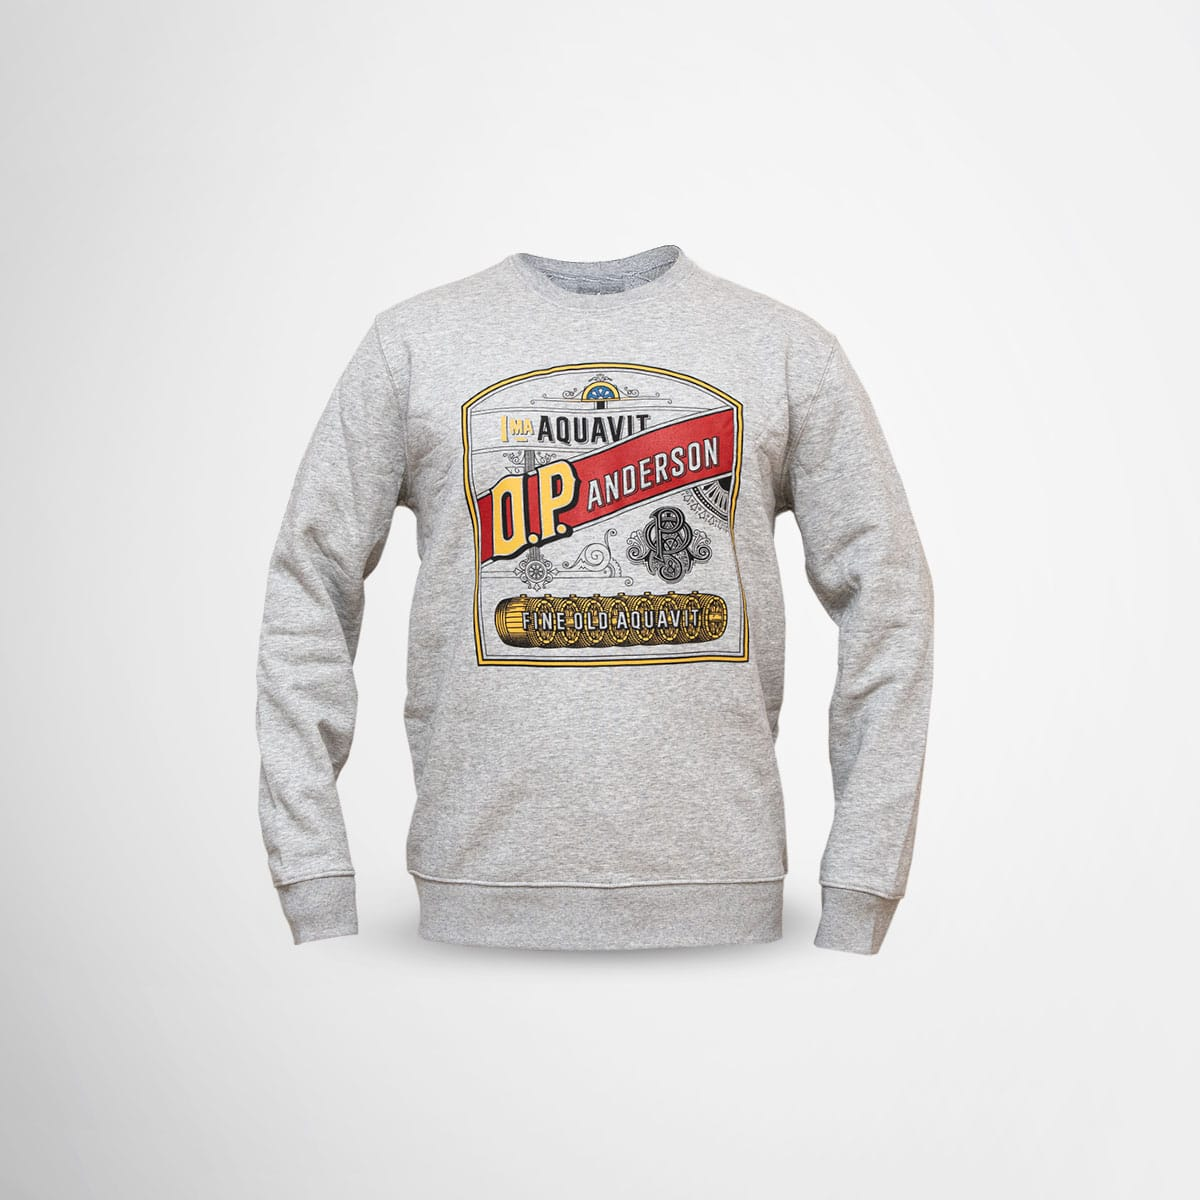 OP Andersson organic branded sweatshirts by Framme and Stanley/Stella